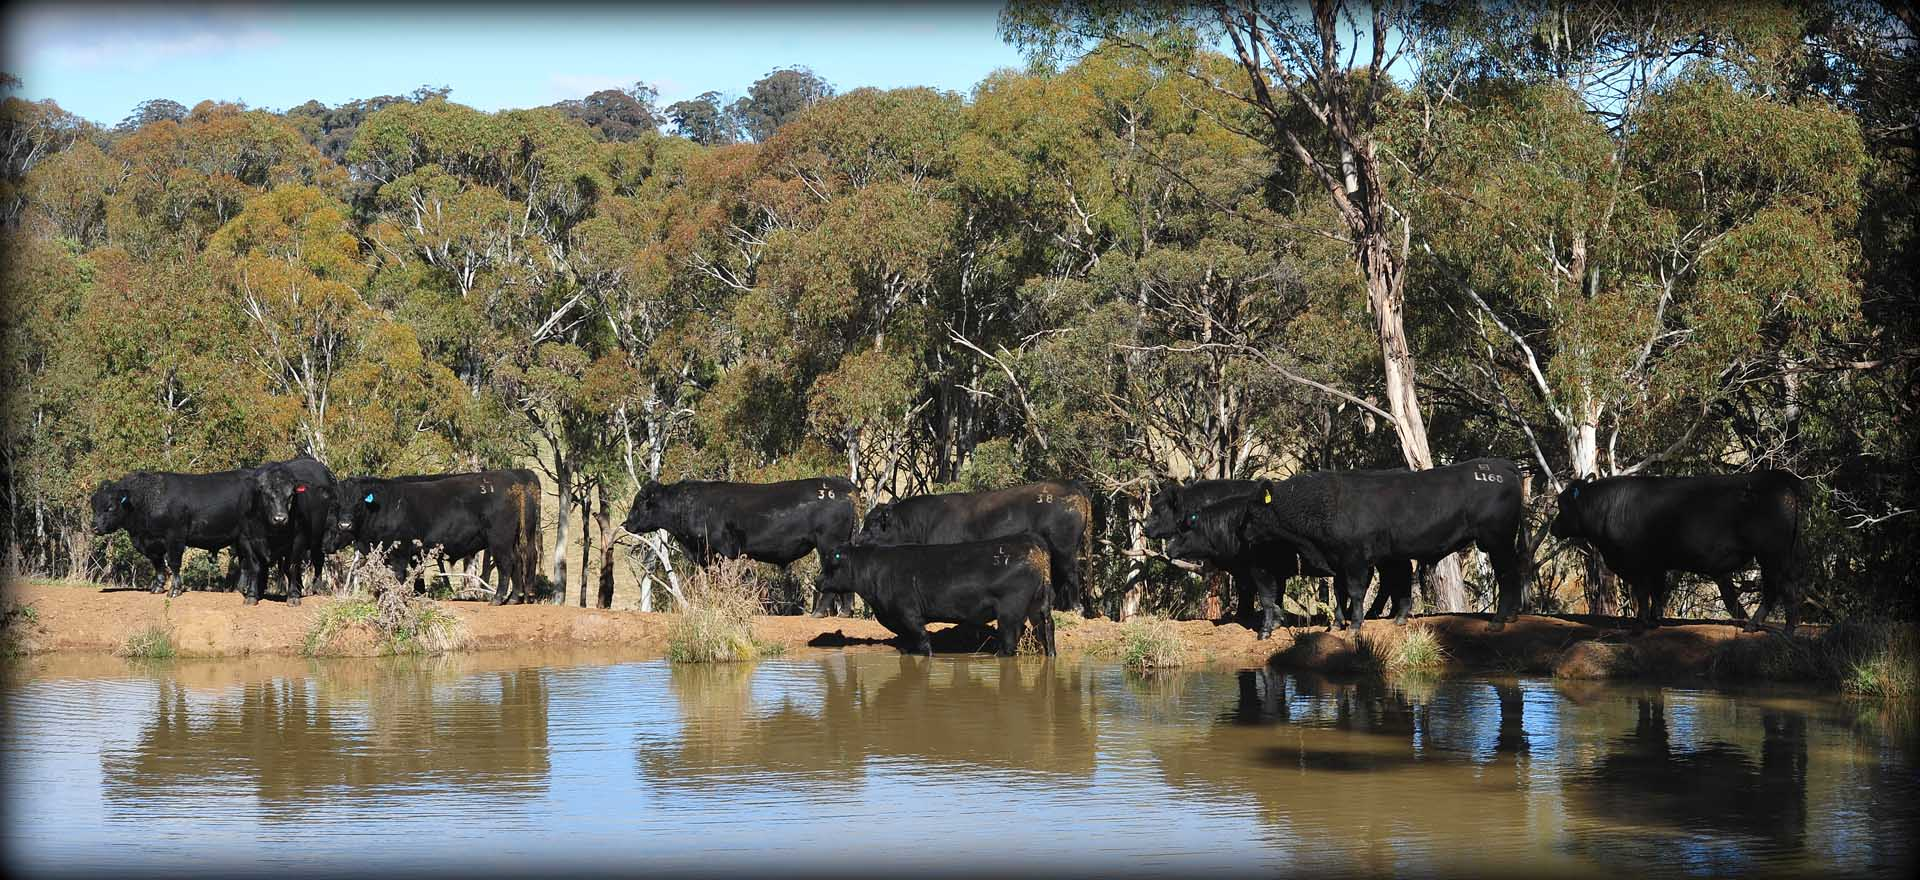 bridgewater_angus_cattle8